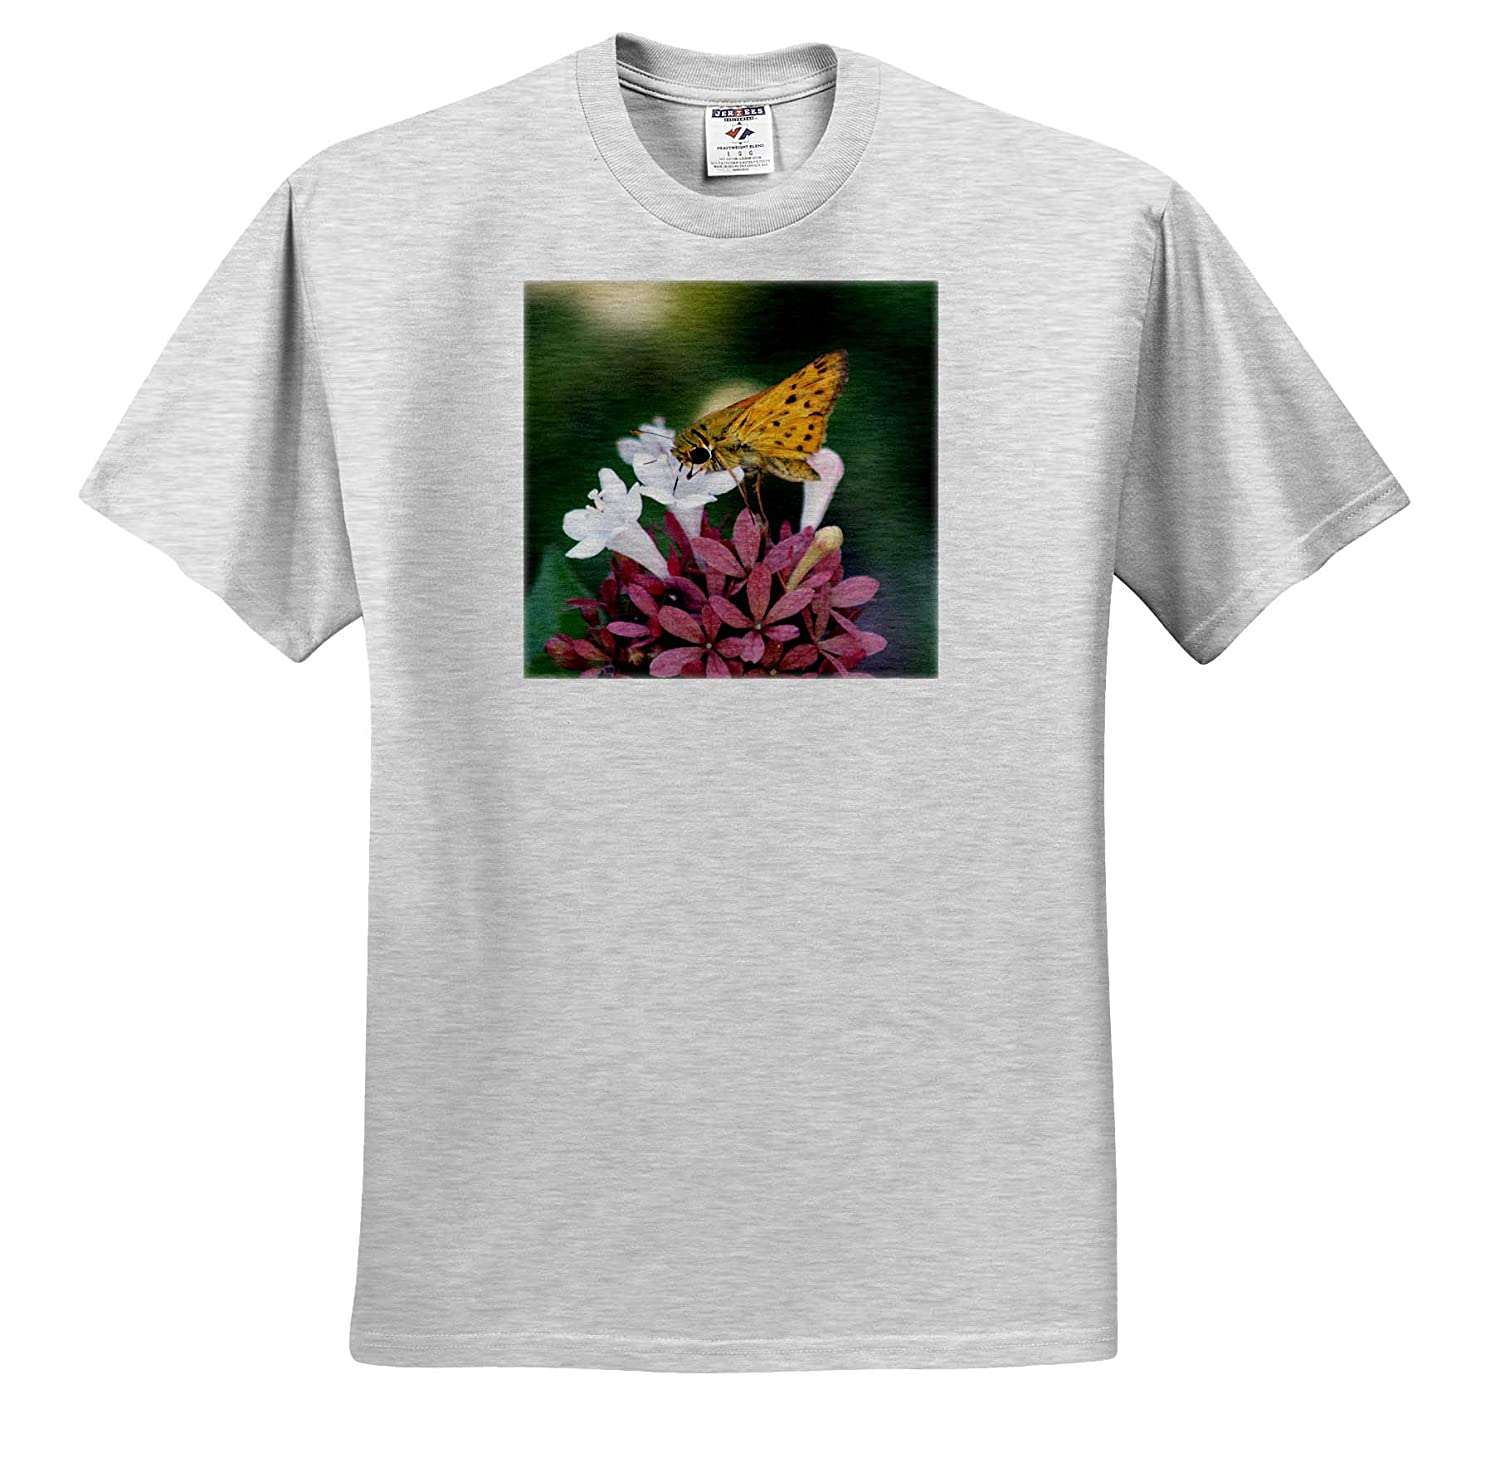 Insects T-Shirts Photograph of a Fiery Skipper Pollinating an abelia Flower in a Garden 3dRose Stamp City